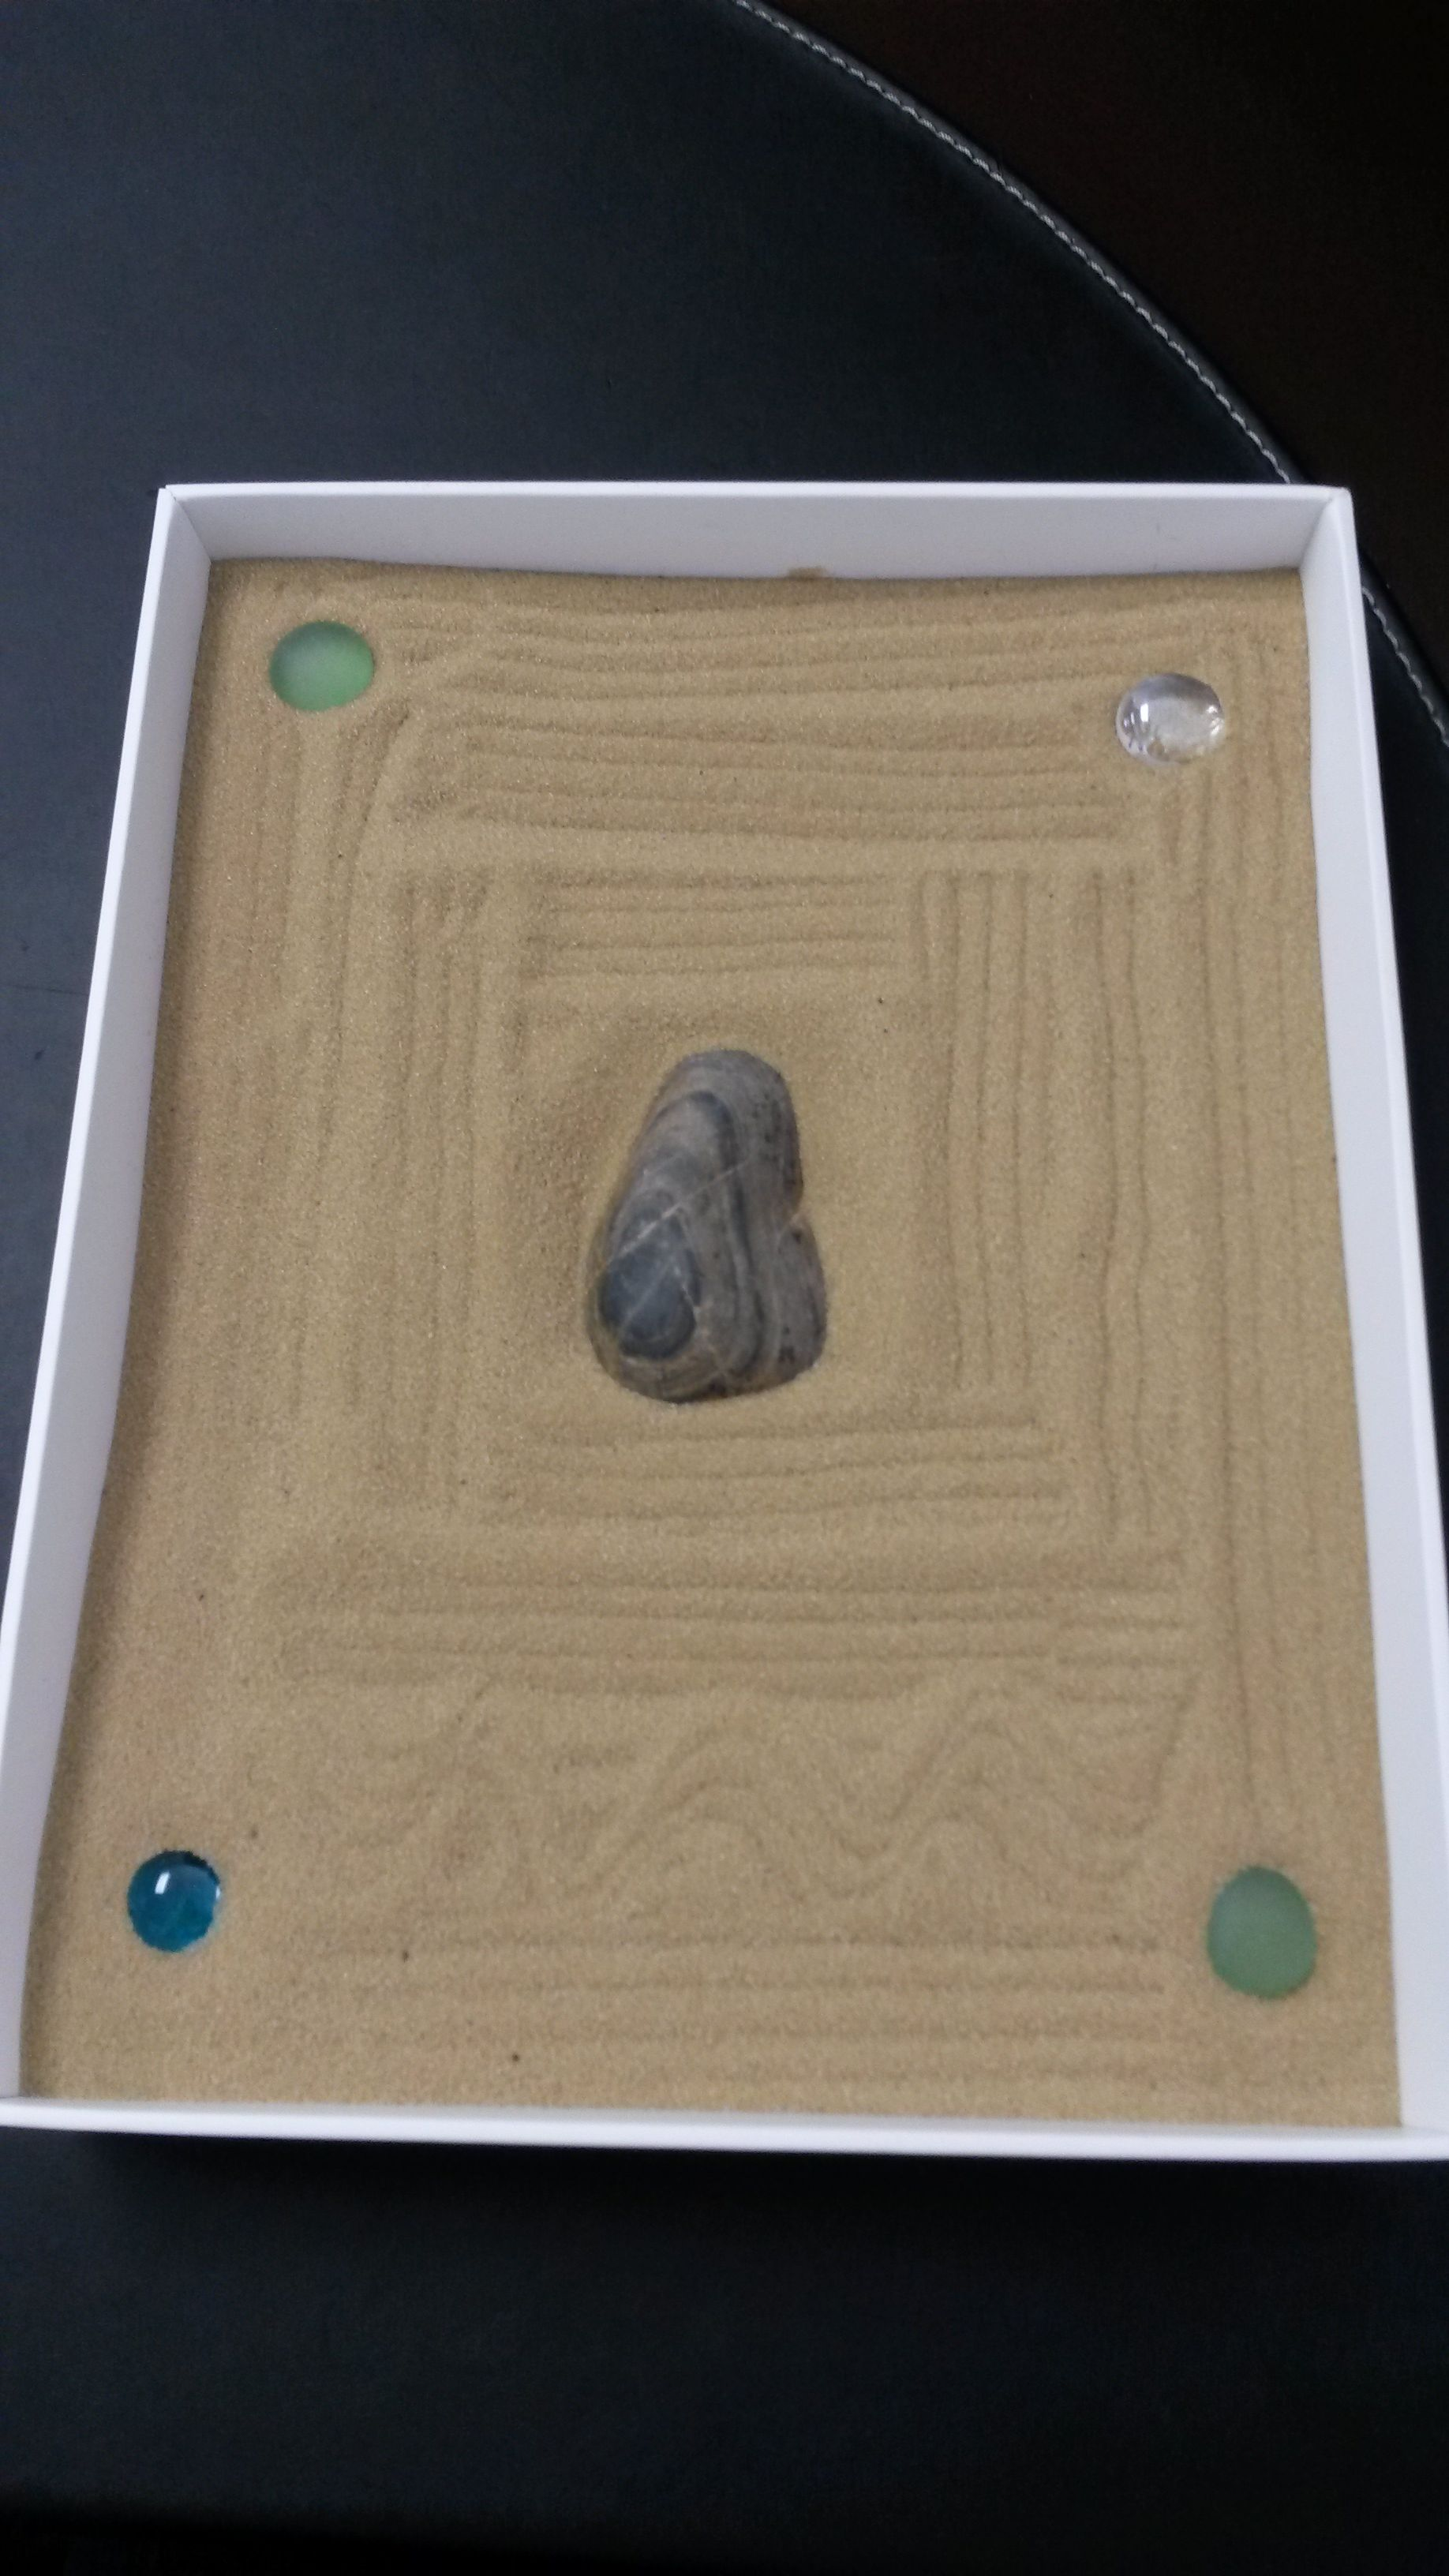 Home Made Zen Garden With Ipad Box Sand Rocks And Gems Hgmporiginal Zen Zengarden Diy Homemade Hgmpdecor Love Life